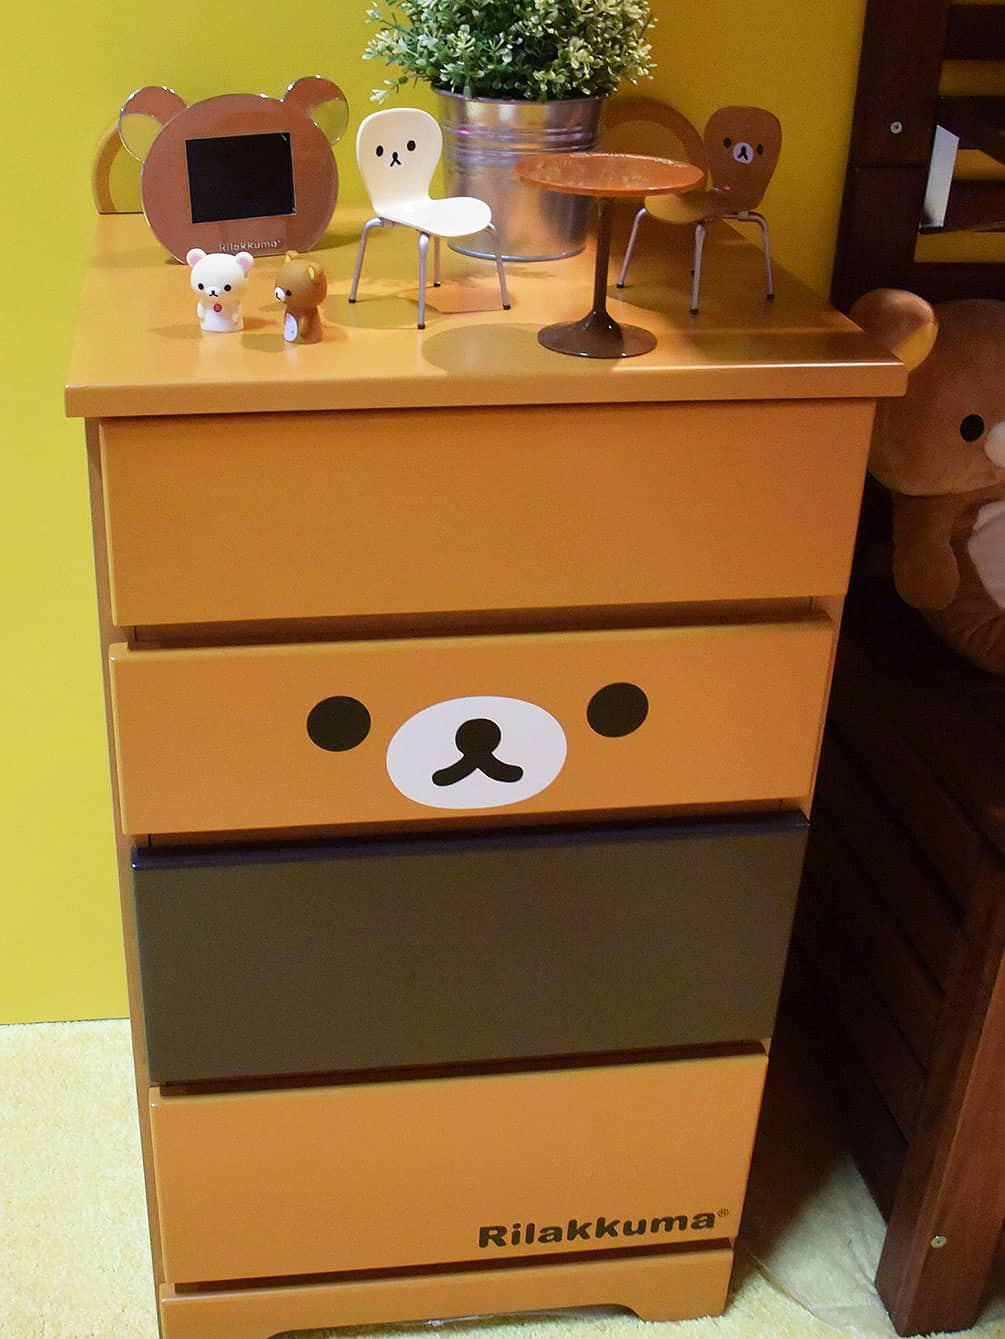 rilakkuma furniture at the Licensing Expo